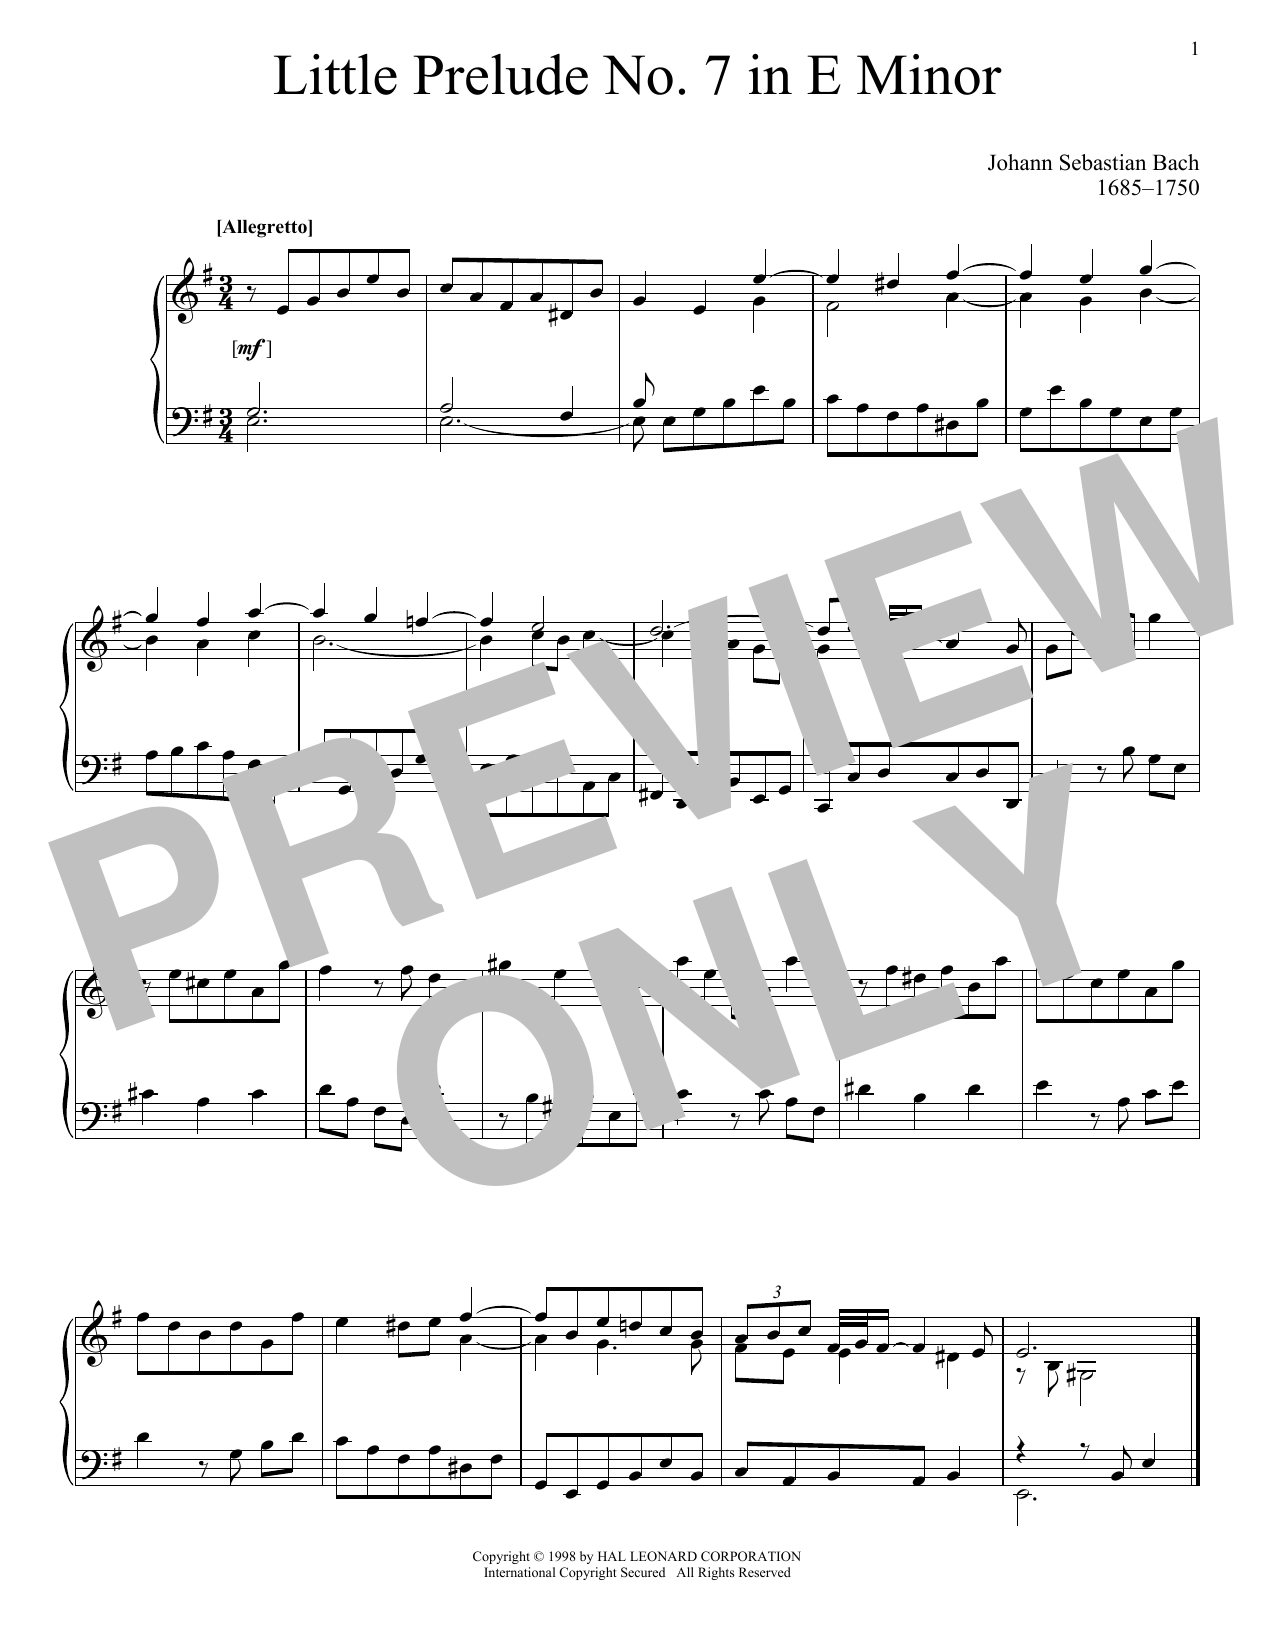 Little Prelude No. 7 in E Minor Sheet Music